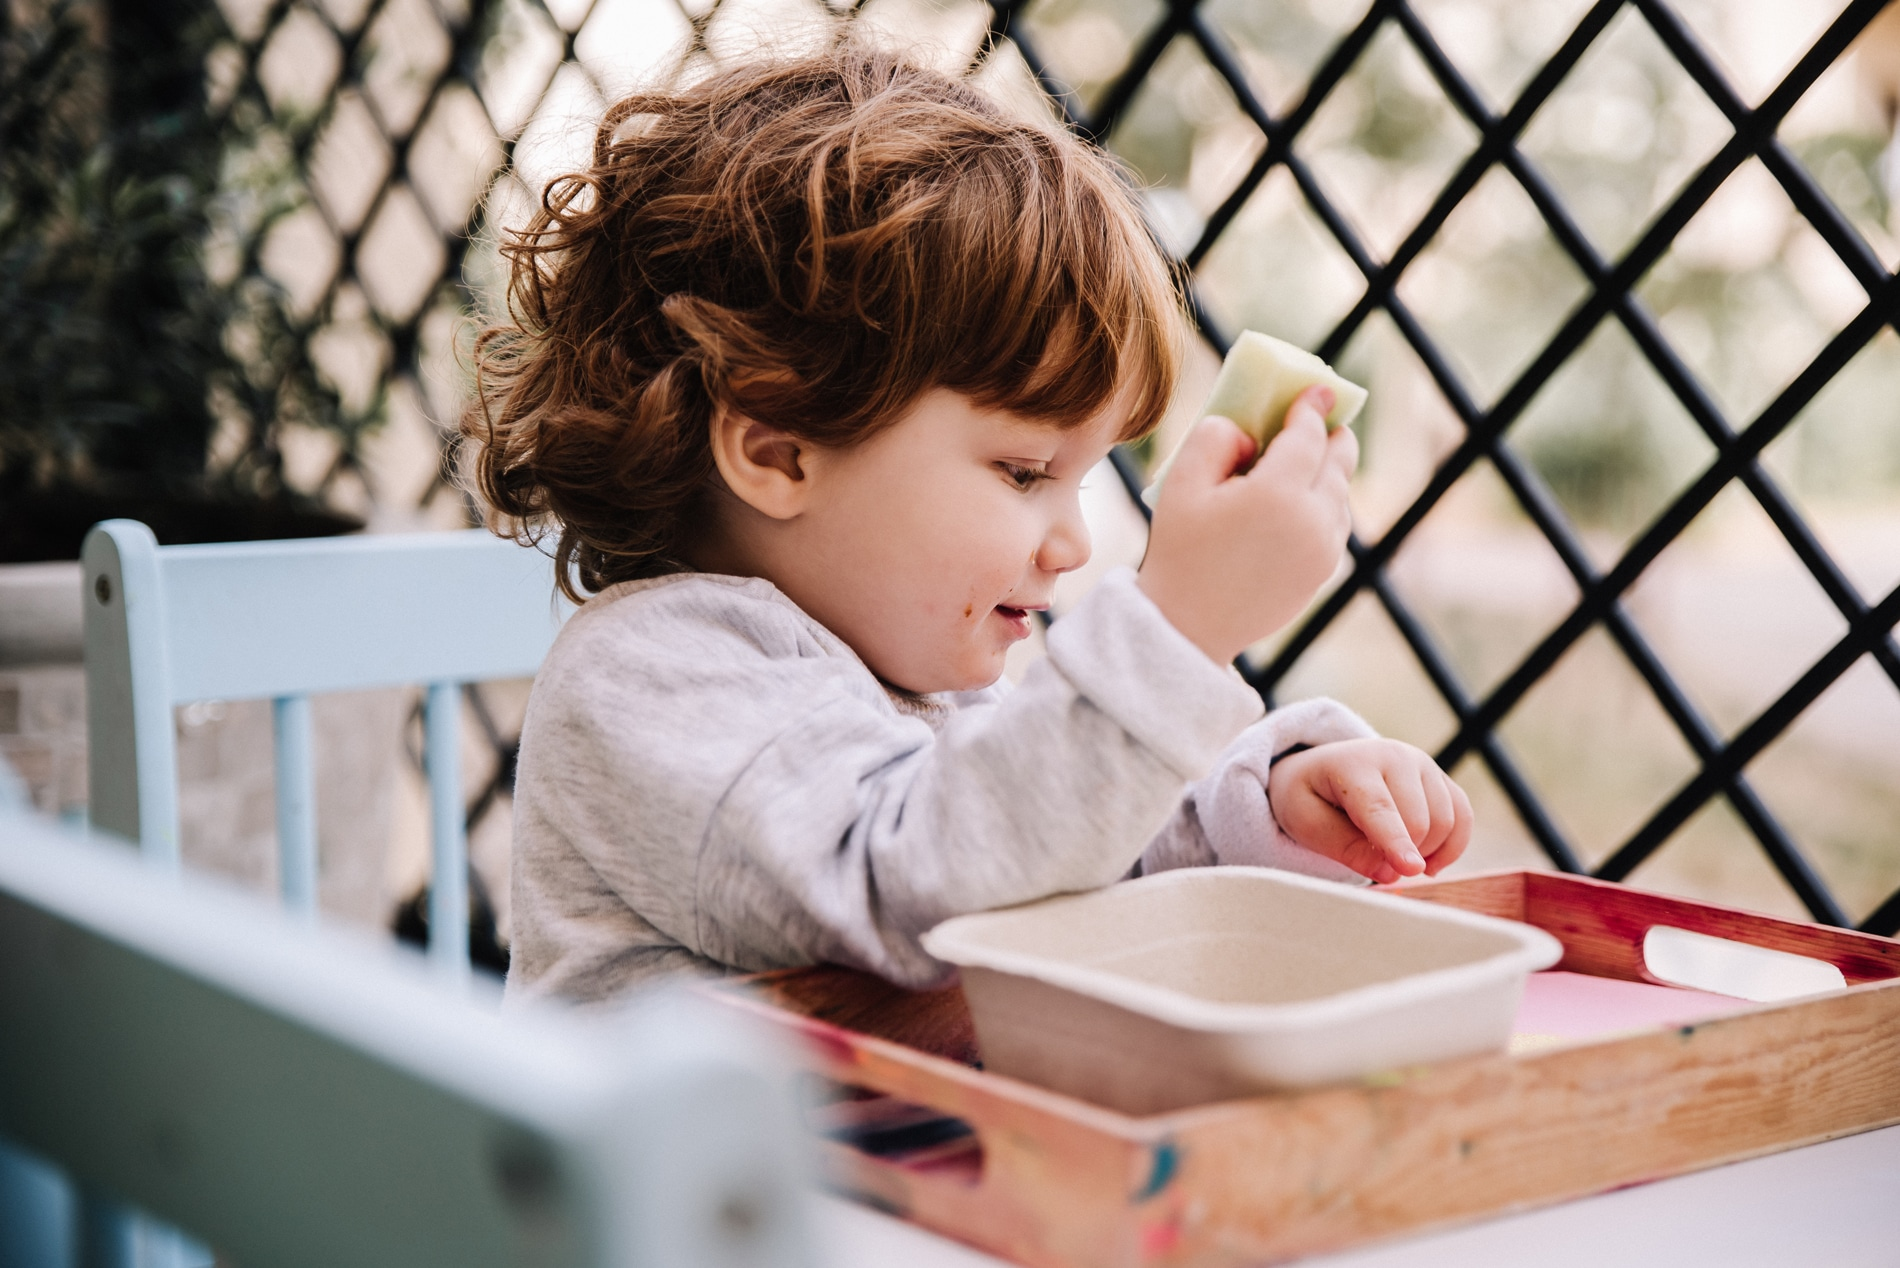 Two year old seated at table doing sponge painting